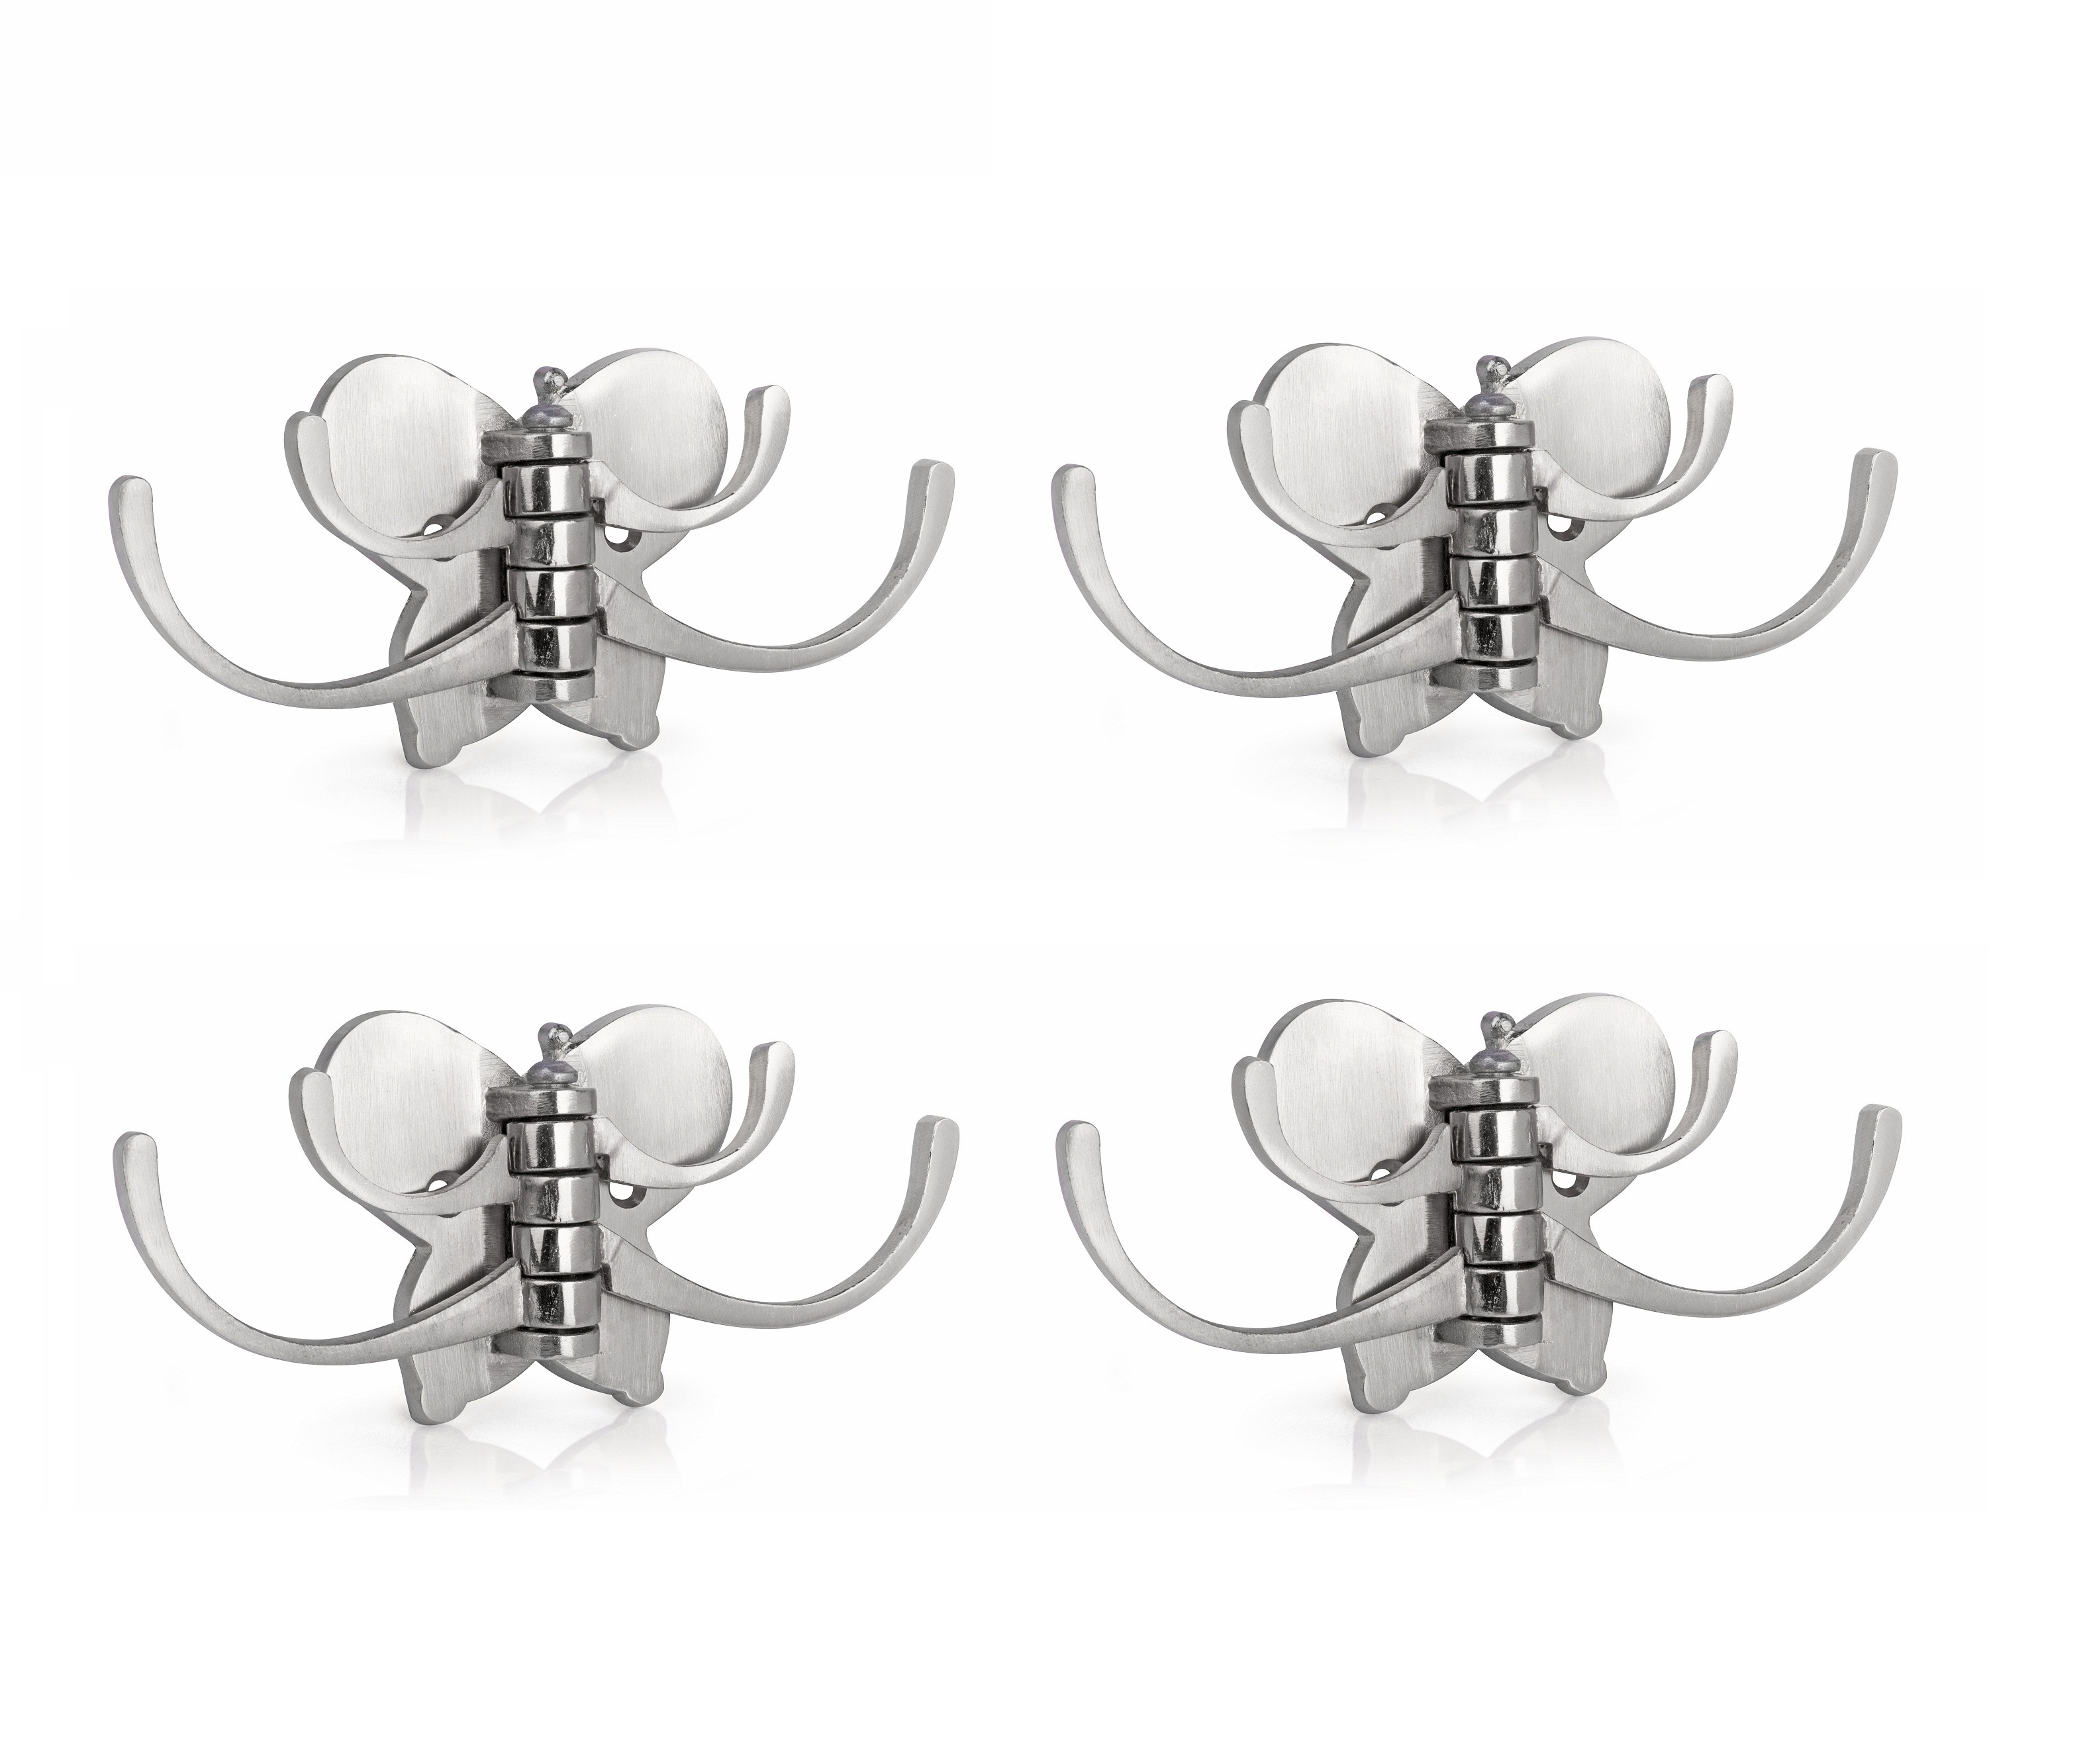 Kurvz butterfly Shape Flexible 4 Pin Cloth Hanger Bathroom Wall Door Hooks For Hanging keys,Clothes,towel  Pack of 4